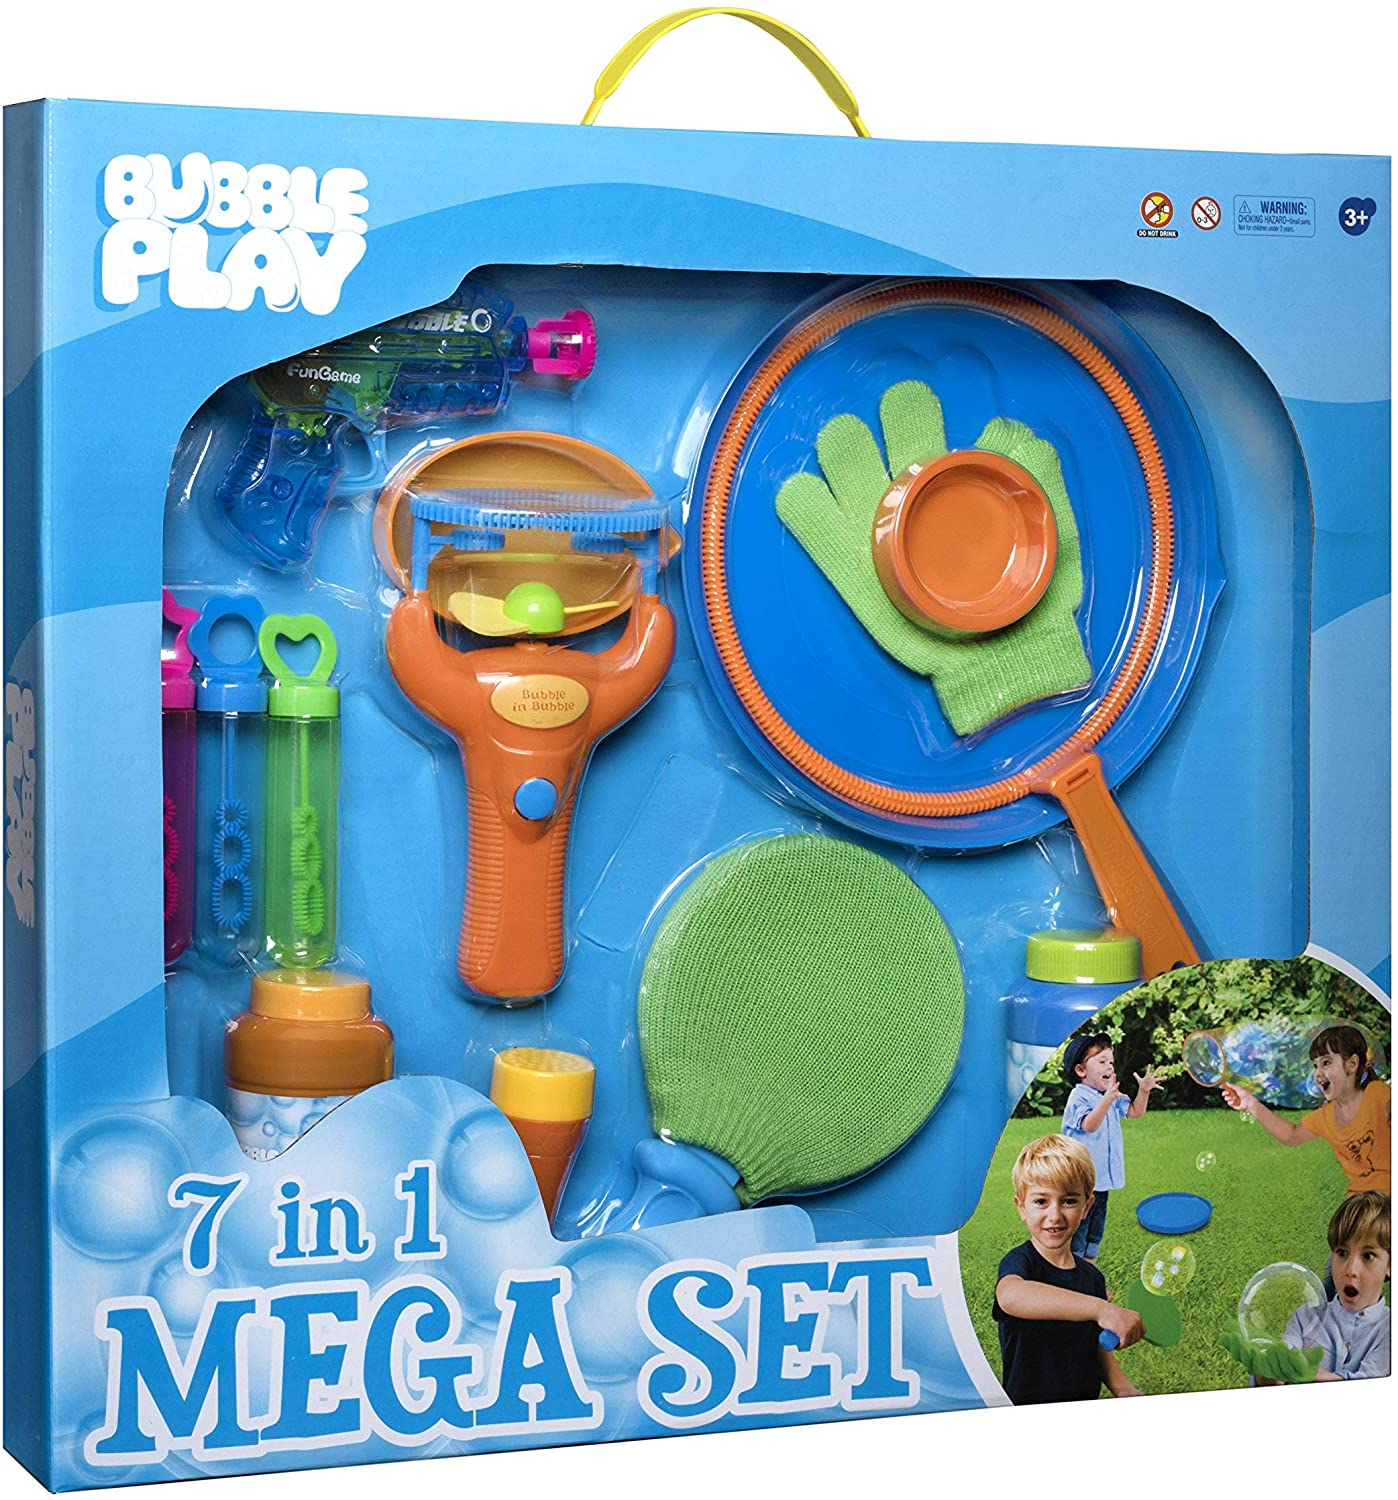 Bubble Play 7-in-1 Magic Bouncing Bubble Mega Set Includes [3] Mini Blowers, [2] 8oz Solution Refills, Blaster Gun, Handheld Fan, Jumbo Wand, Bouncy Game Paddle, Glove, Blower Tool, Trays & More